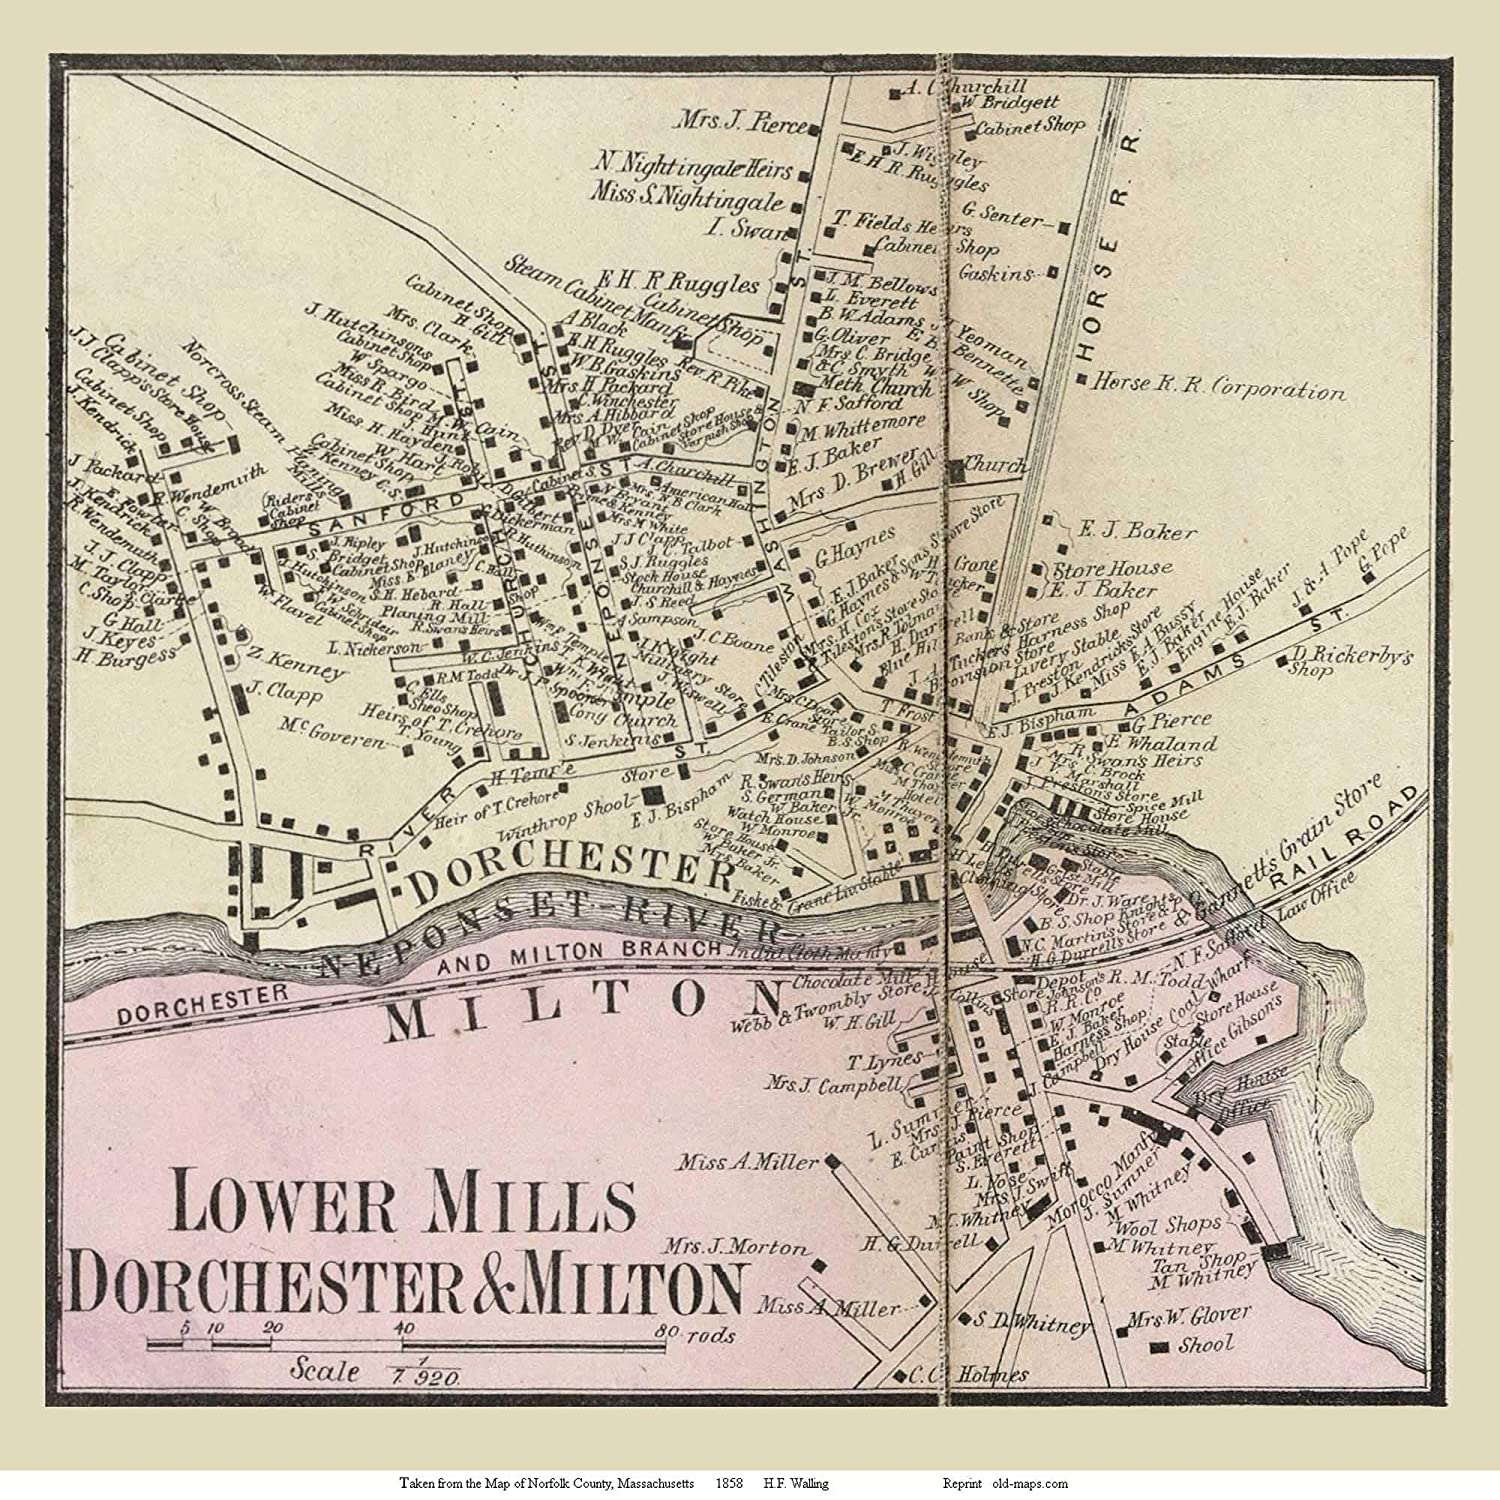 Amazon.com: Dorchester Lower Mills and Milton, Machusetts ... on map of rockingham county nh towns, map of middlesex county ma towns, map of cape cod ma towns, map of litchfield county ct towns,